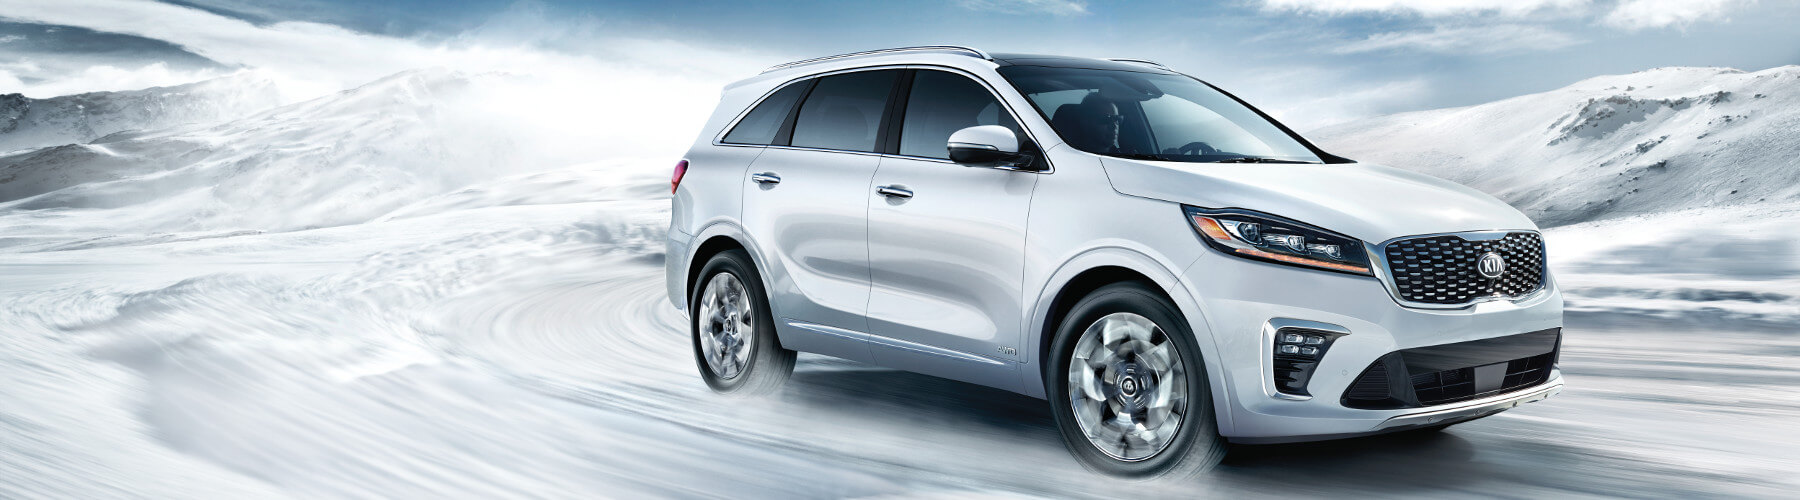 A 2019 Kia Sorento driving through the snow